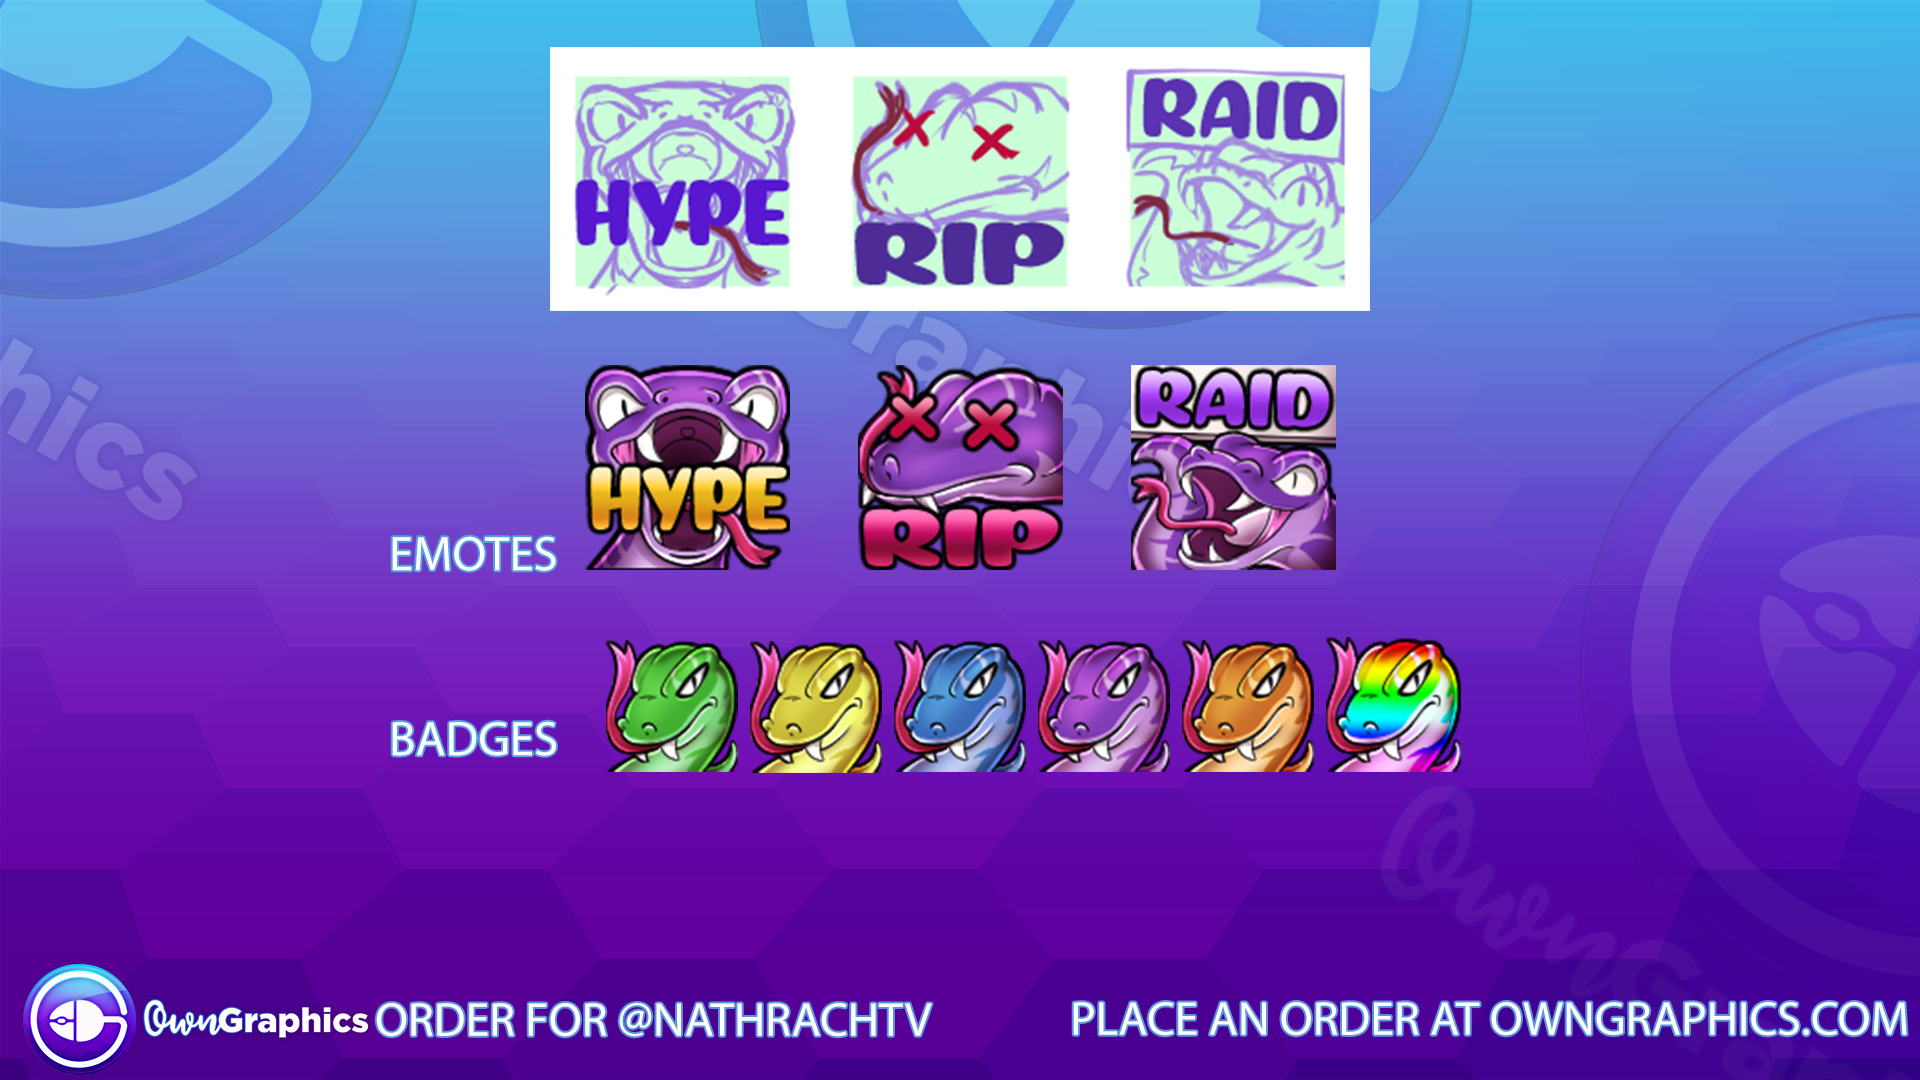 OwnGraphics Order nathrach  Emotes